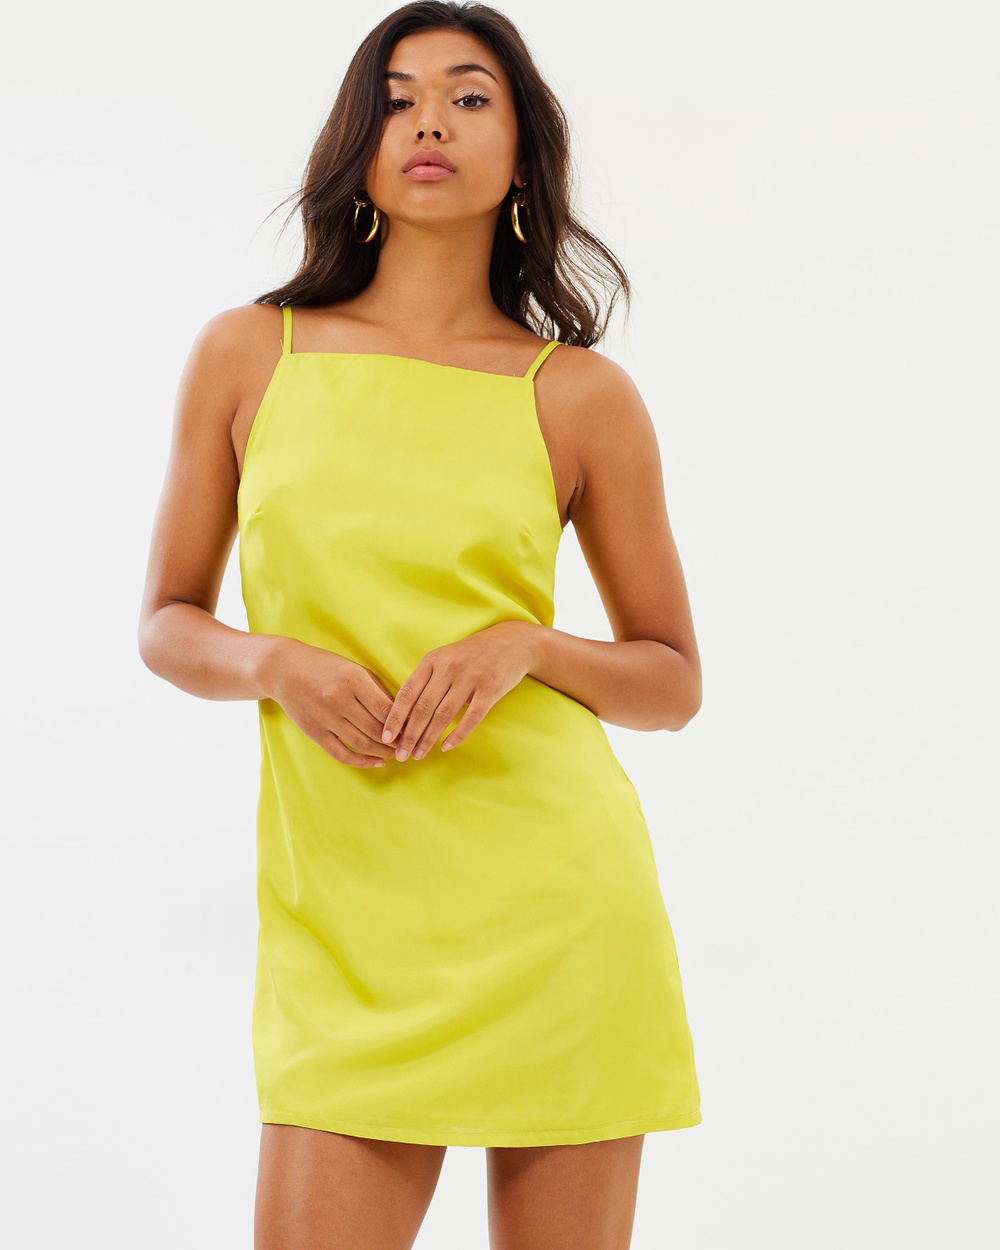 Missguided Strappy Cami Dress Dresses Yellow Strappy Cami Dress